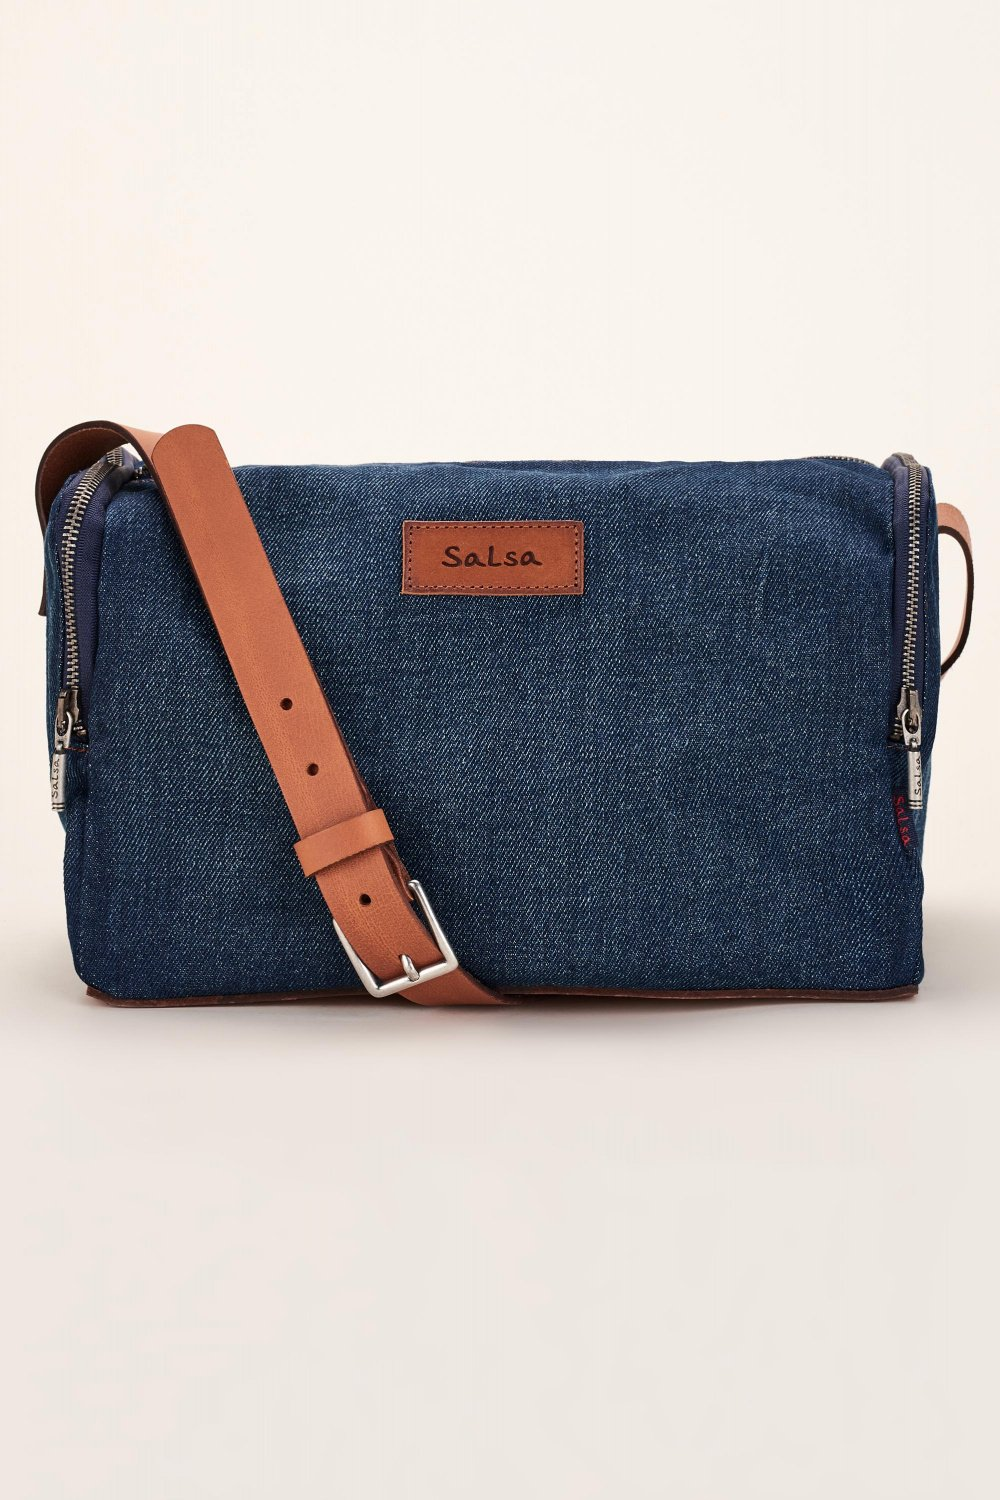 Tasche in Bio-Denim - Salsa